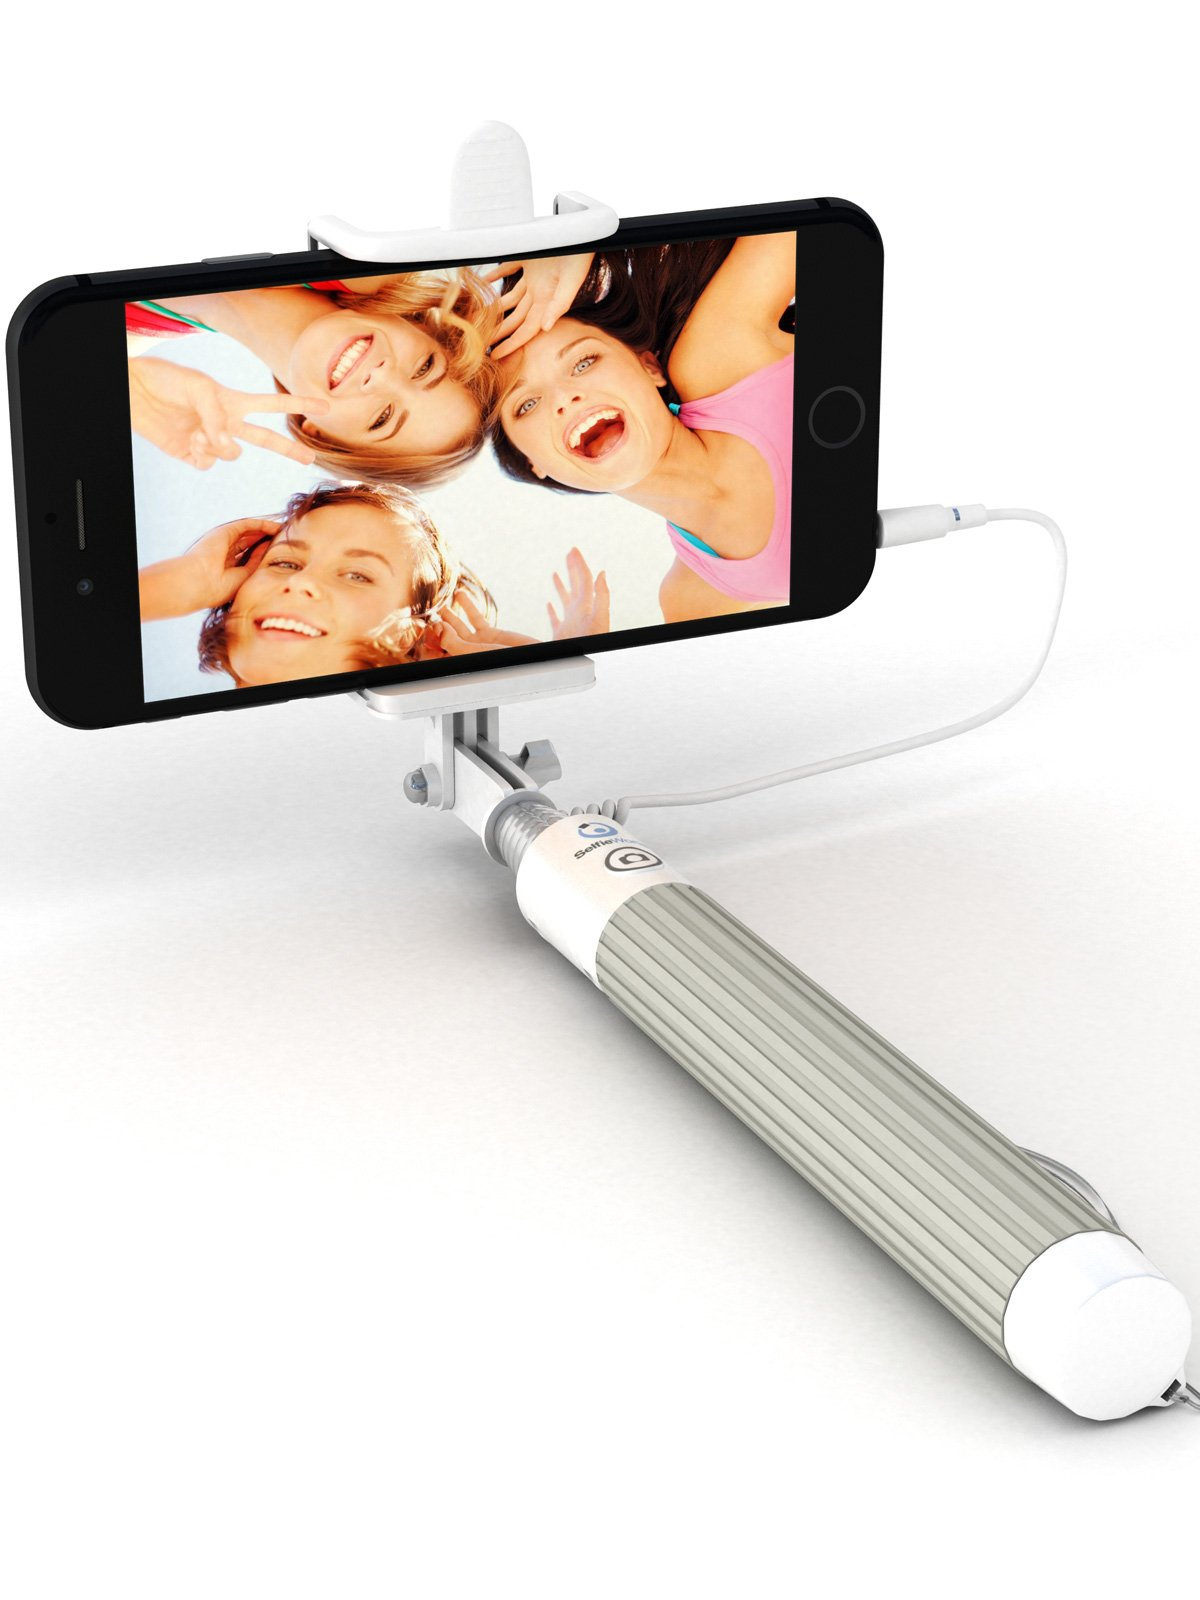 Premium 5-in-1 Wired Selfie Stick for iPhone XR XS 10 9 8 7 6 5, Samsung Galaxy S10 S9 S8 S7 S6 S5 - Takes Selfies in Seconds, Get Perfect HD Photos - No Apps, No Downloads, No Batteries Required by Selfie World